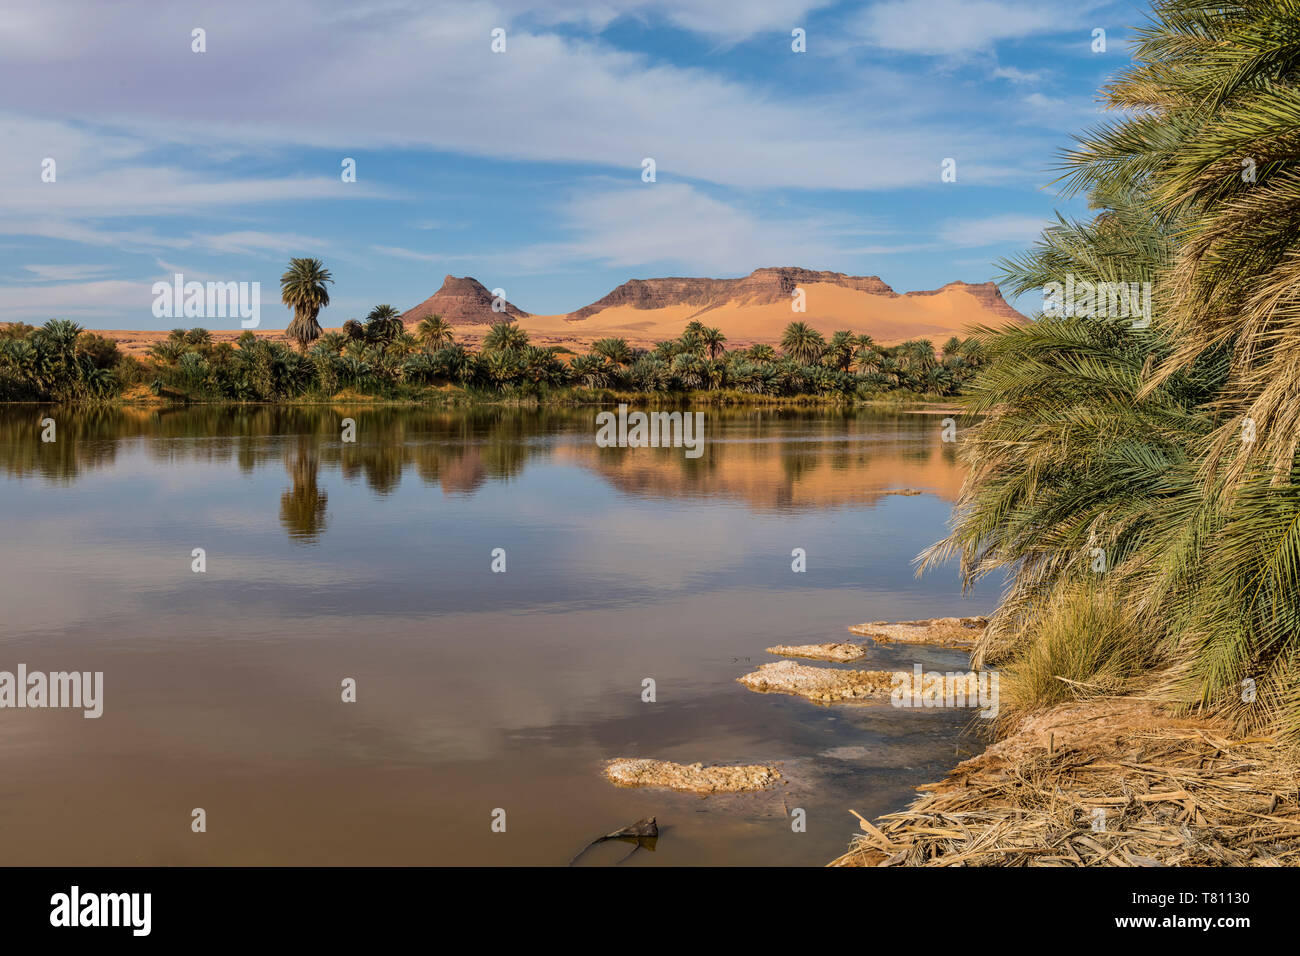 Salt water lake in Northern Chad, Africa - Stock Image